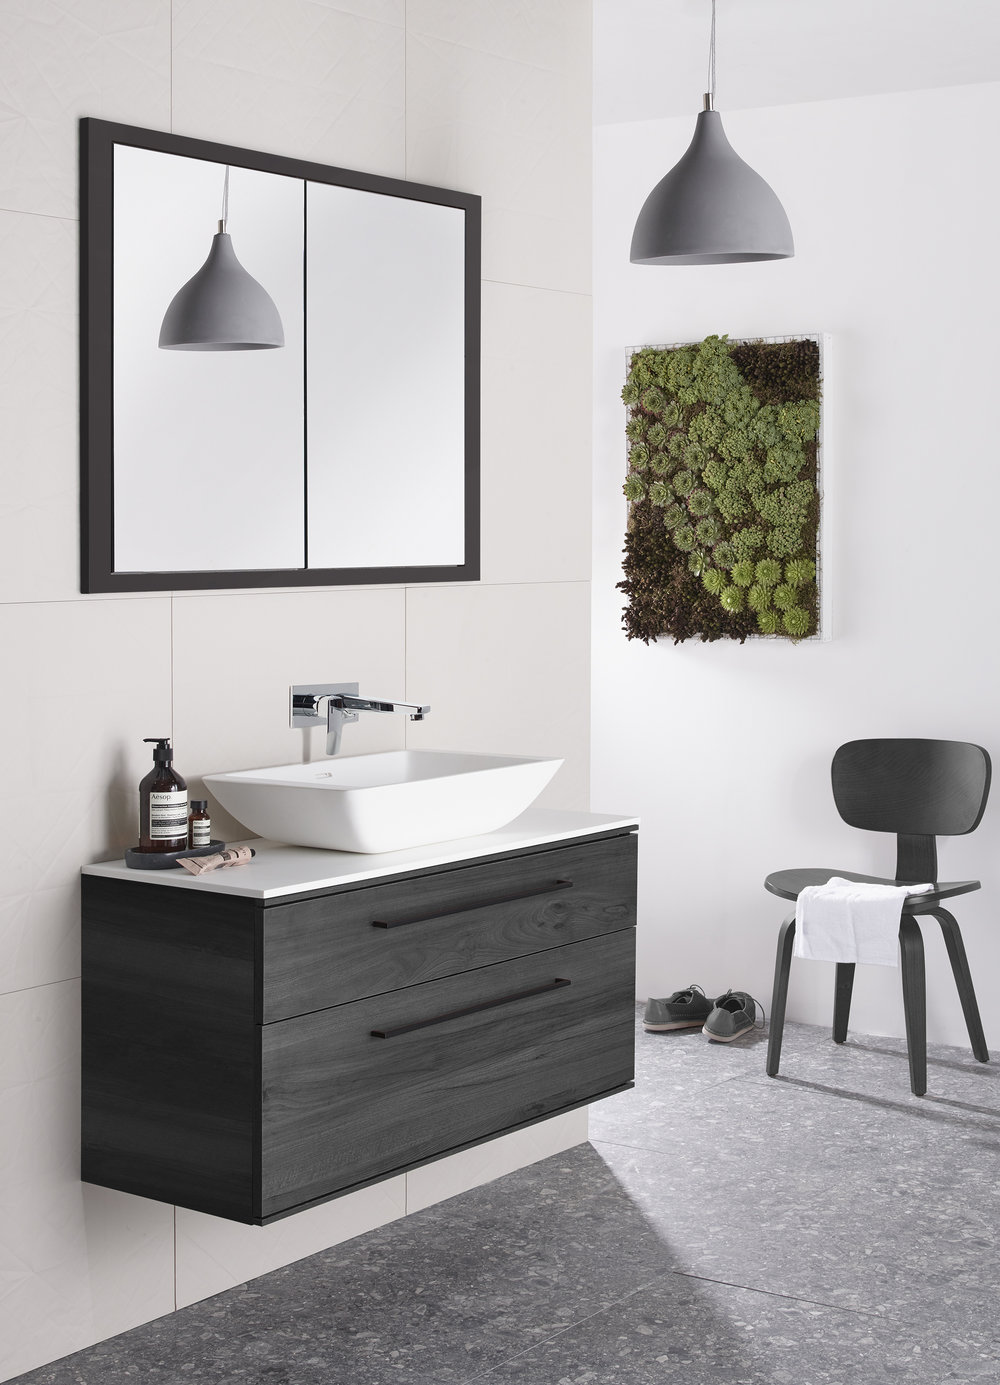 the Perks of Wallflowers - Create a vertical garden and transform bare bathroom walls with a lush tapestry of green.